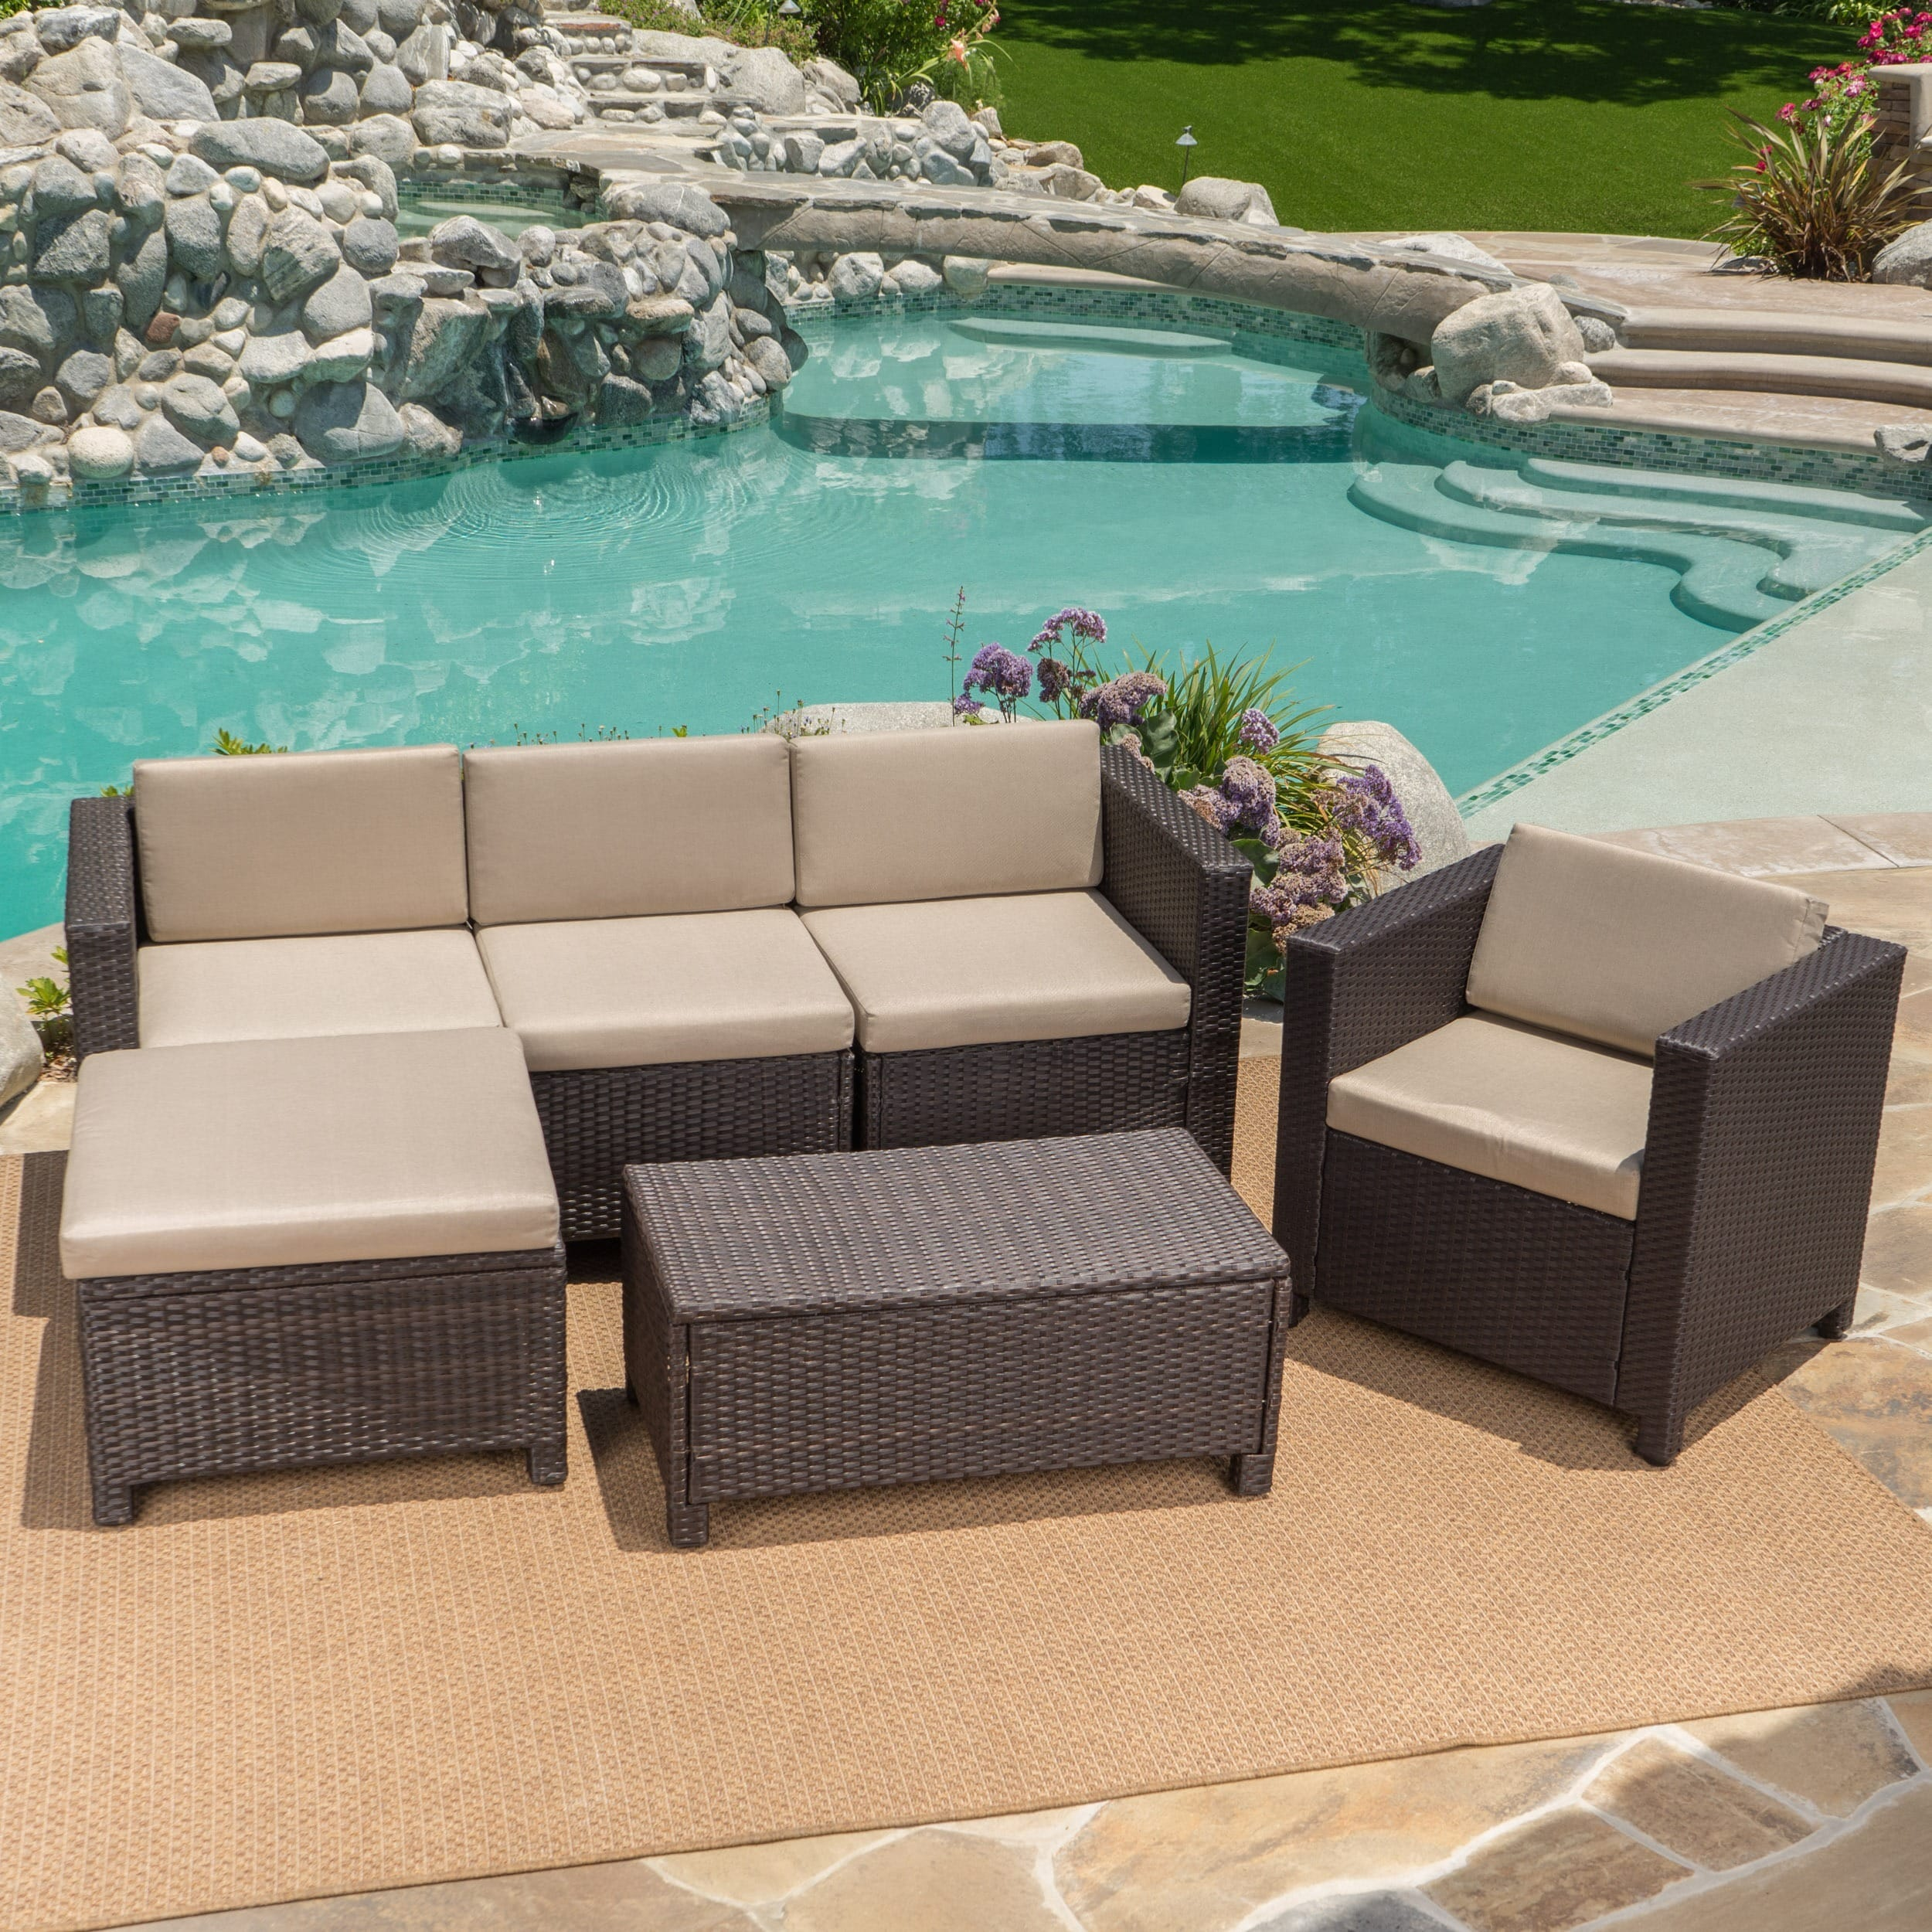 Cheap L Shaped Rattan Sofa Details About Puerta Outdoor 6 Piece Wicker L Shaped Sectional Sofa Set With Cushions By